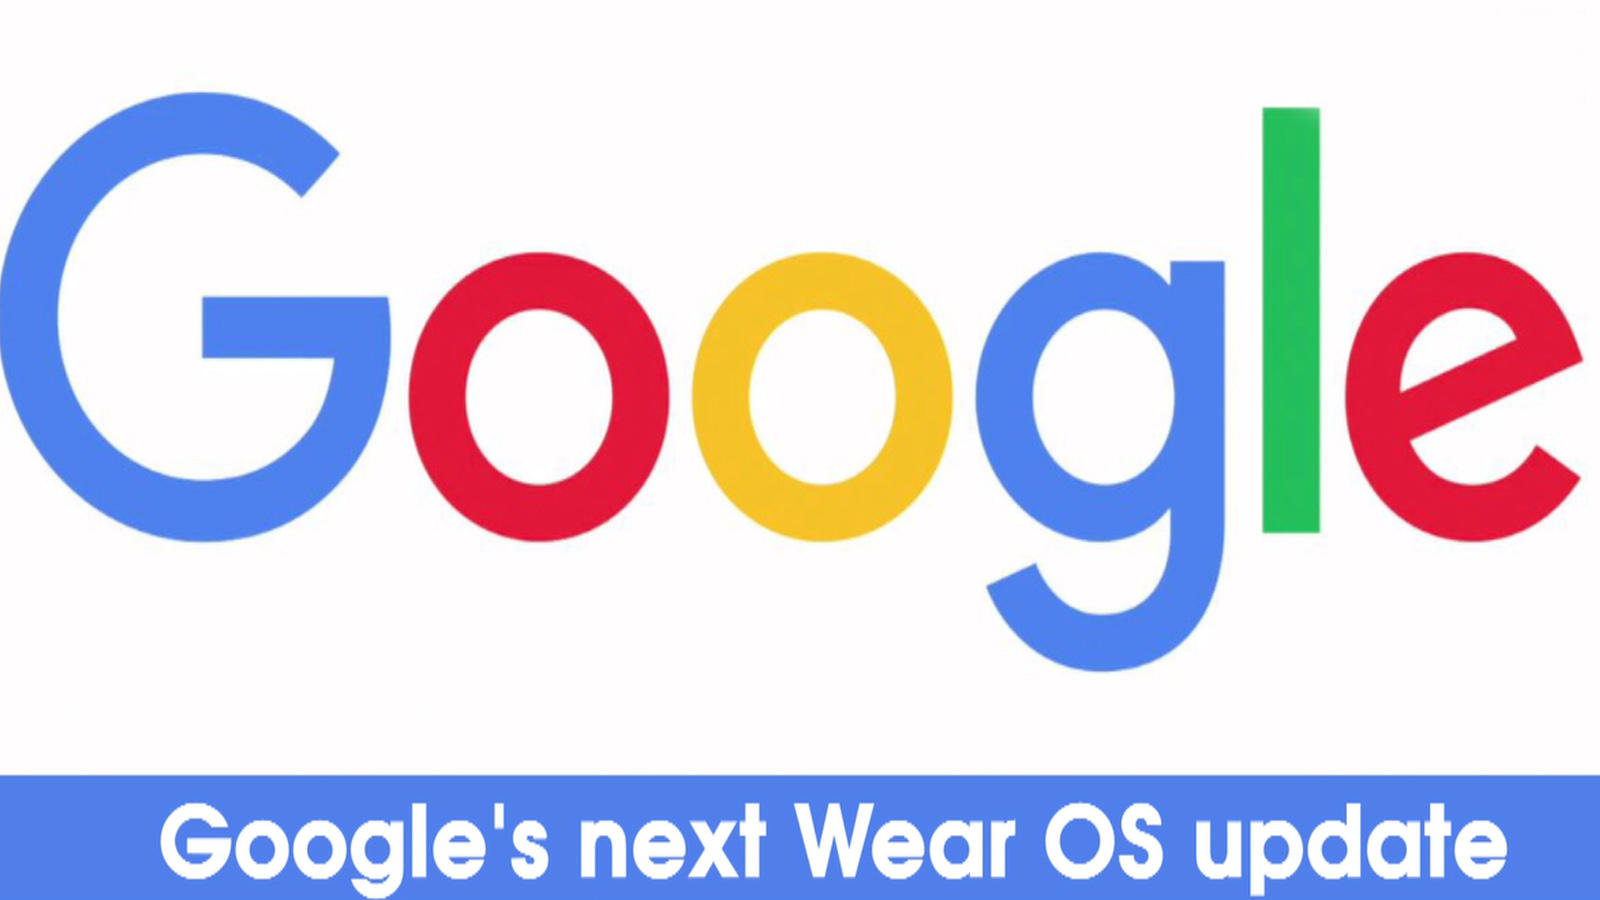 googles-next-wear-os-update-will-launch-apps-up-to-20-pc-faster